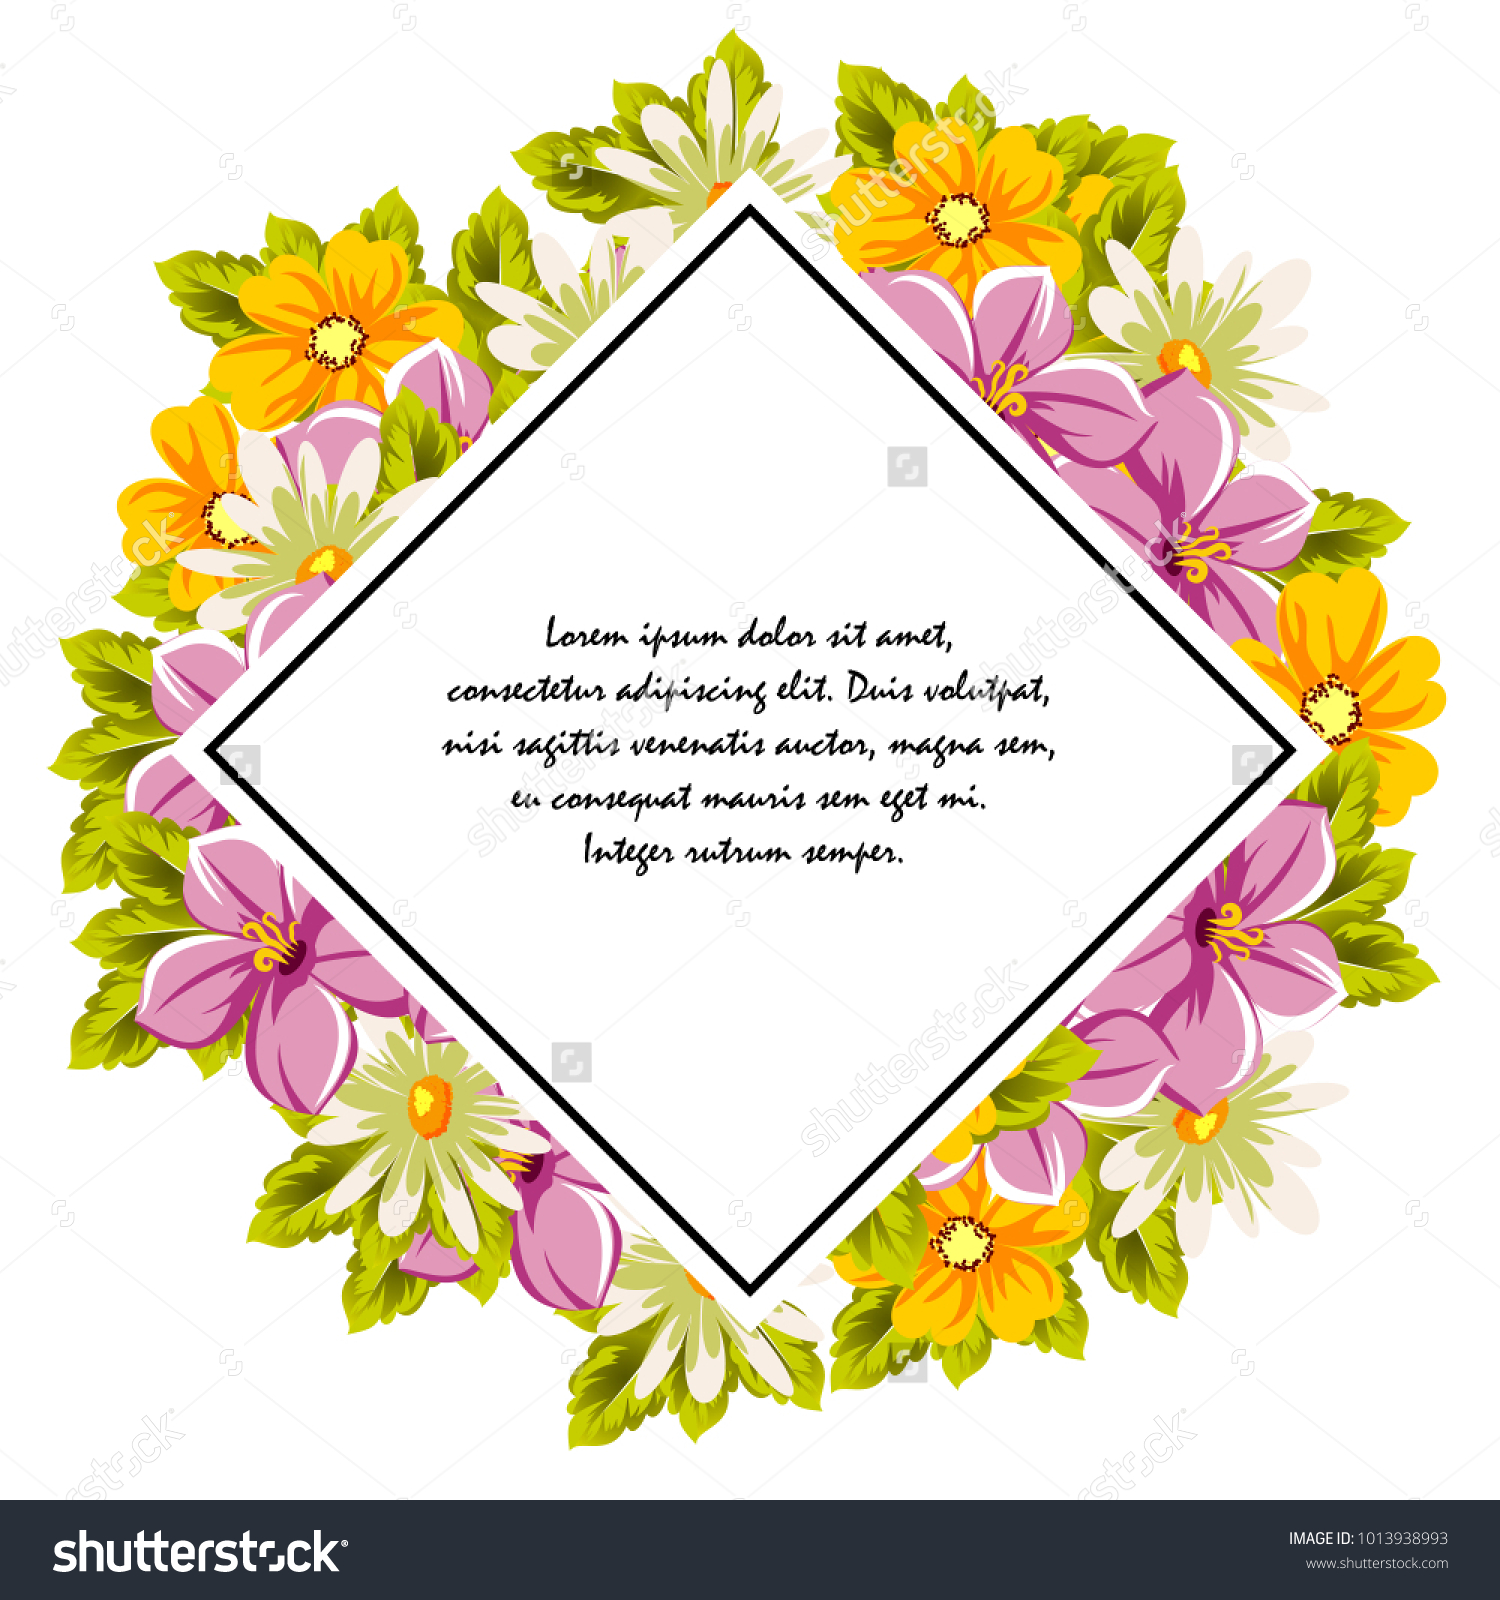 Frame of flowers for card designs greeting cards birthday frame of flowers for card designs greeting cards birthday invitations valentines day party holiday vector illustration ez canvas izmirmasajfo